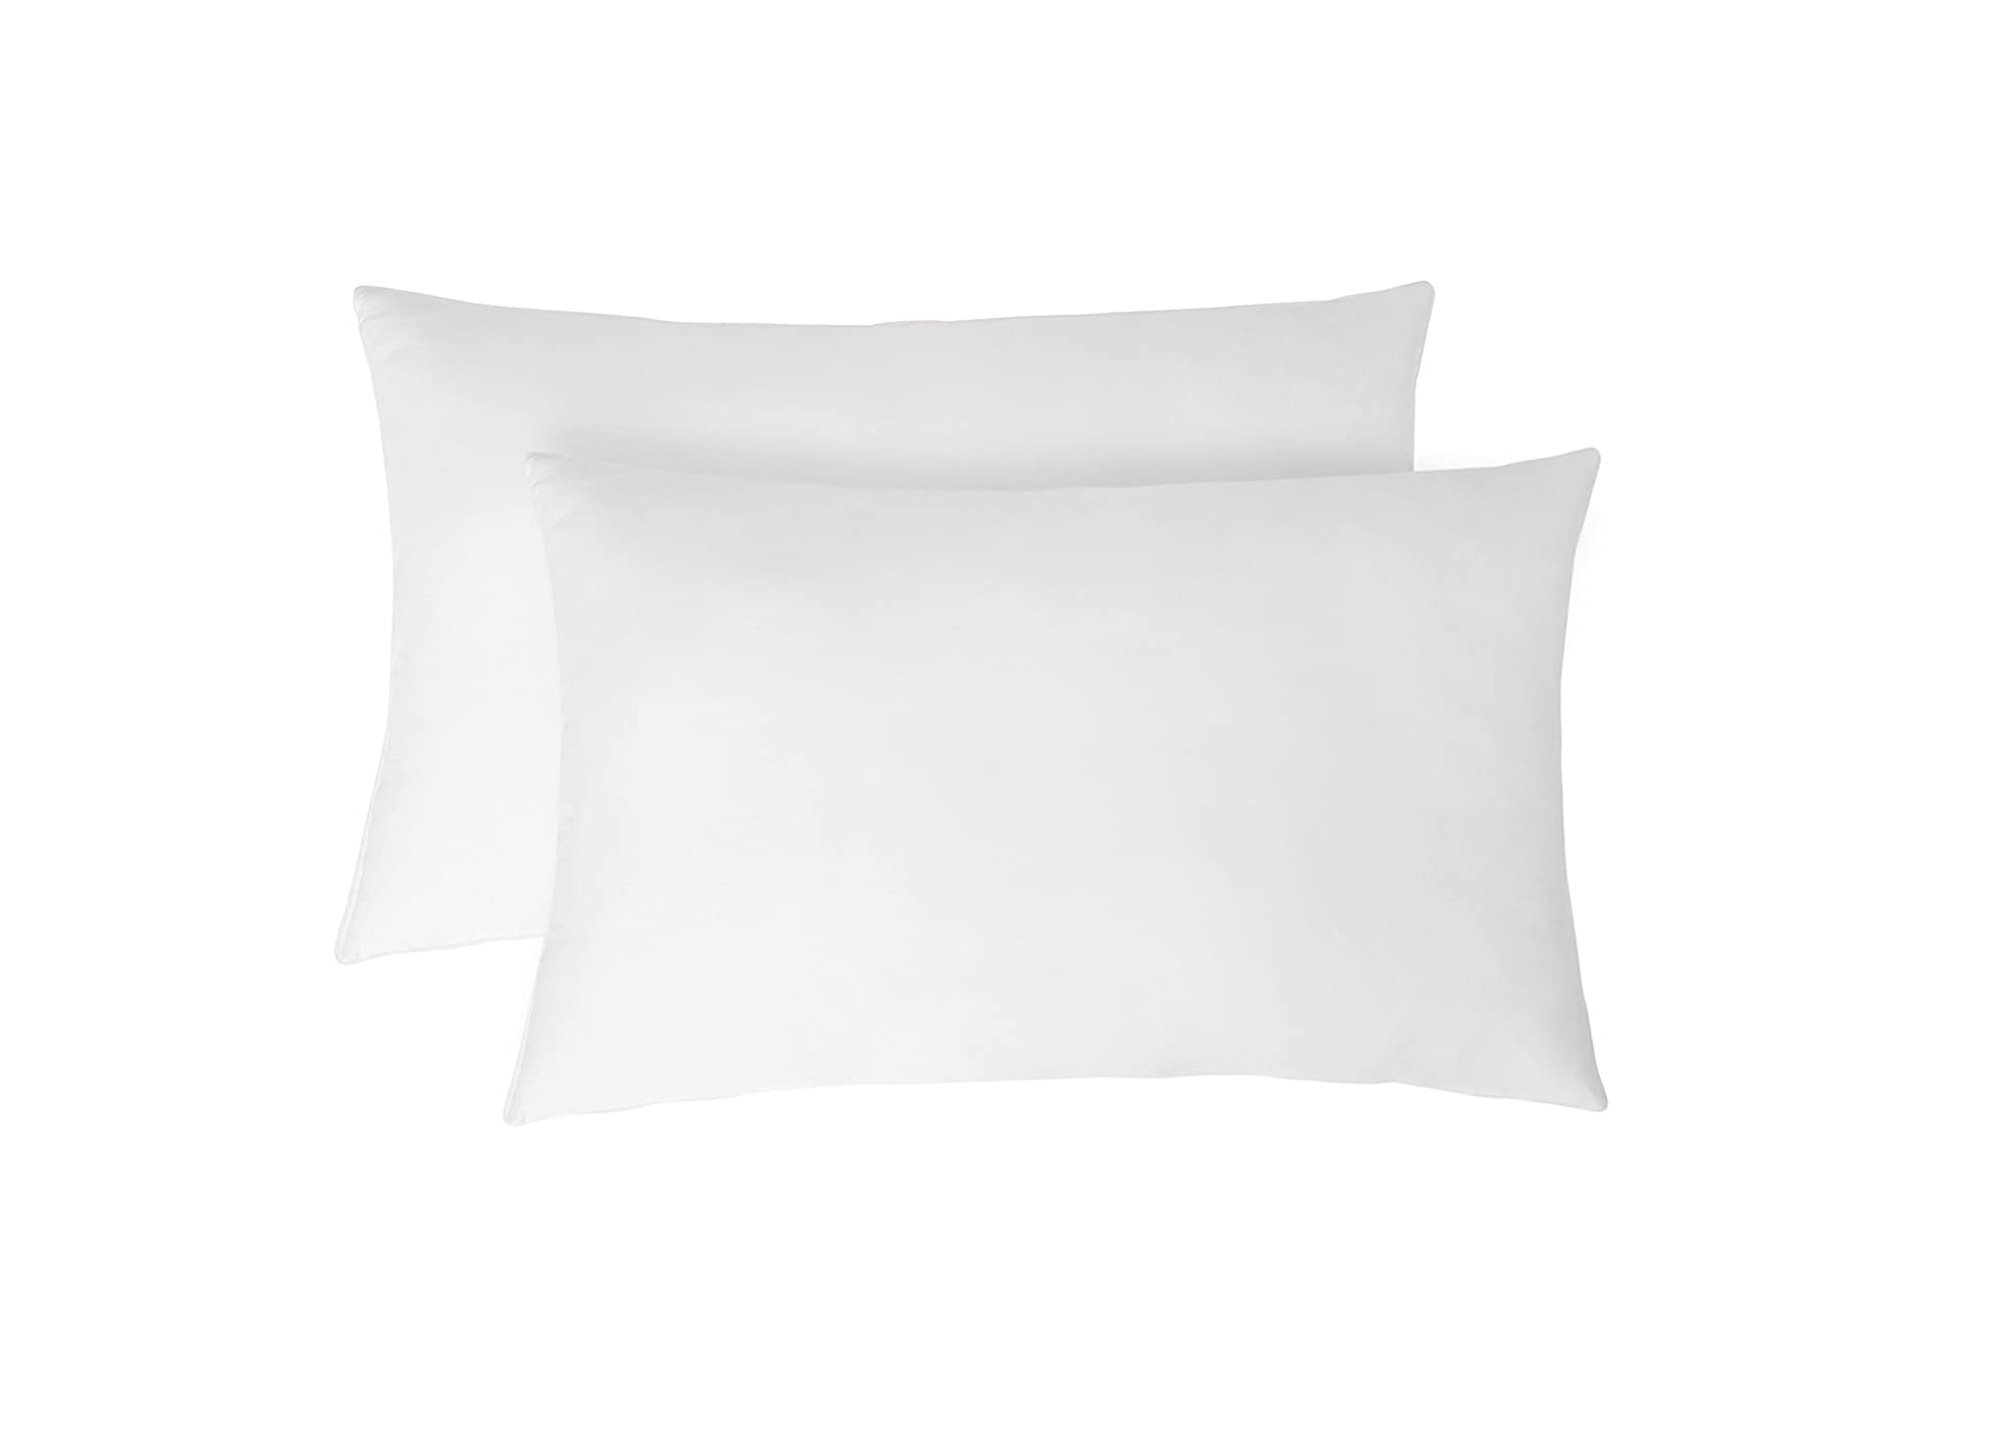 soft-white-cover-pillows-isolated